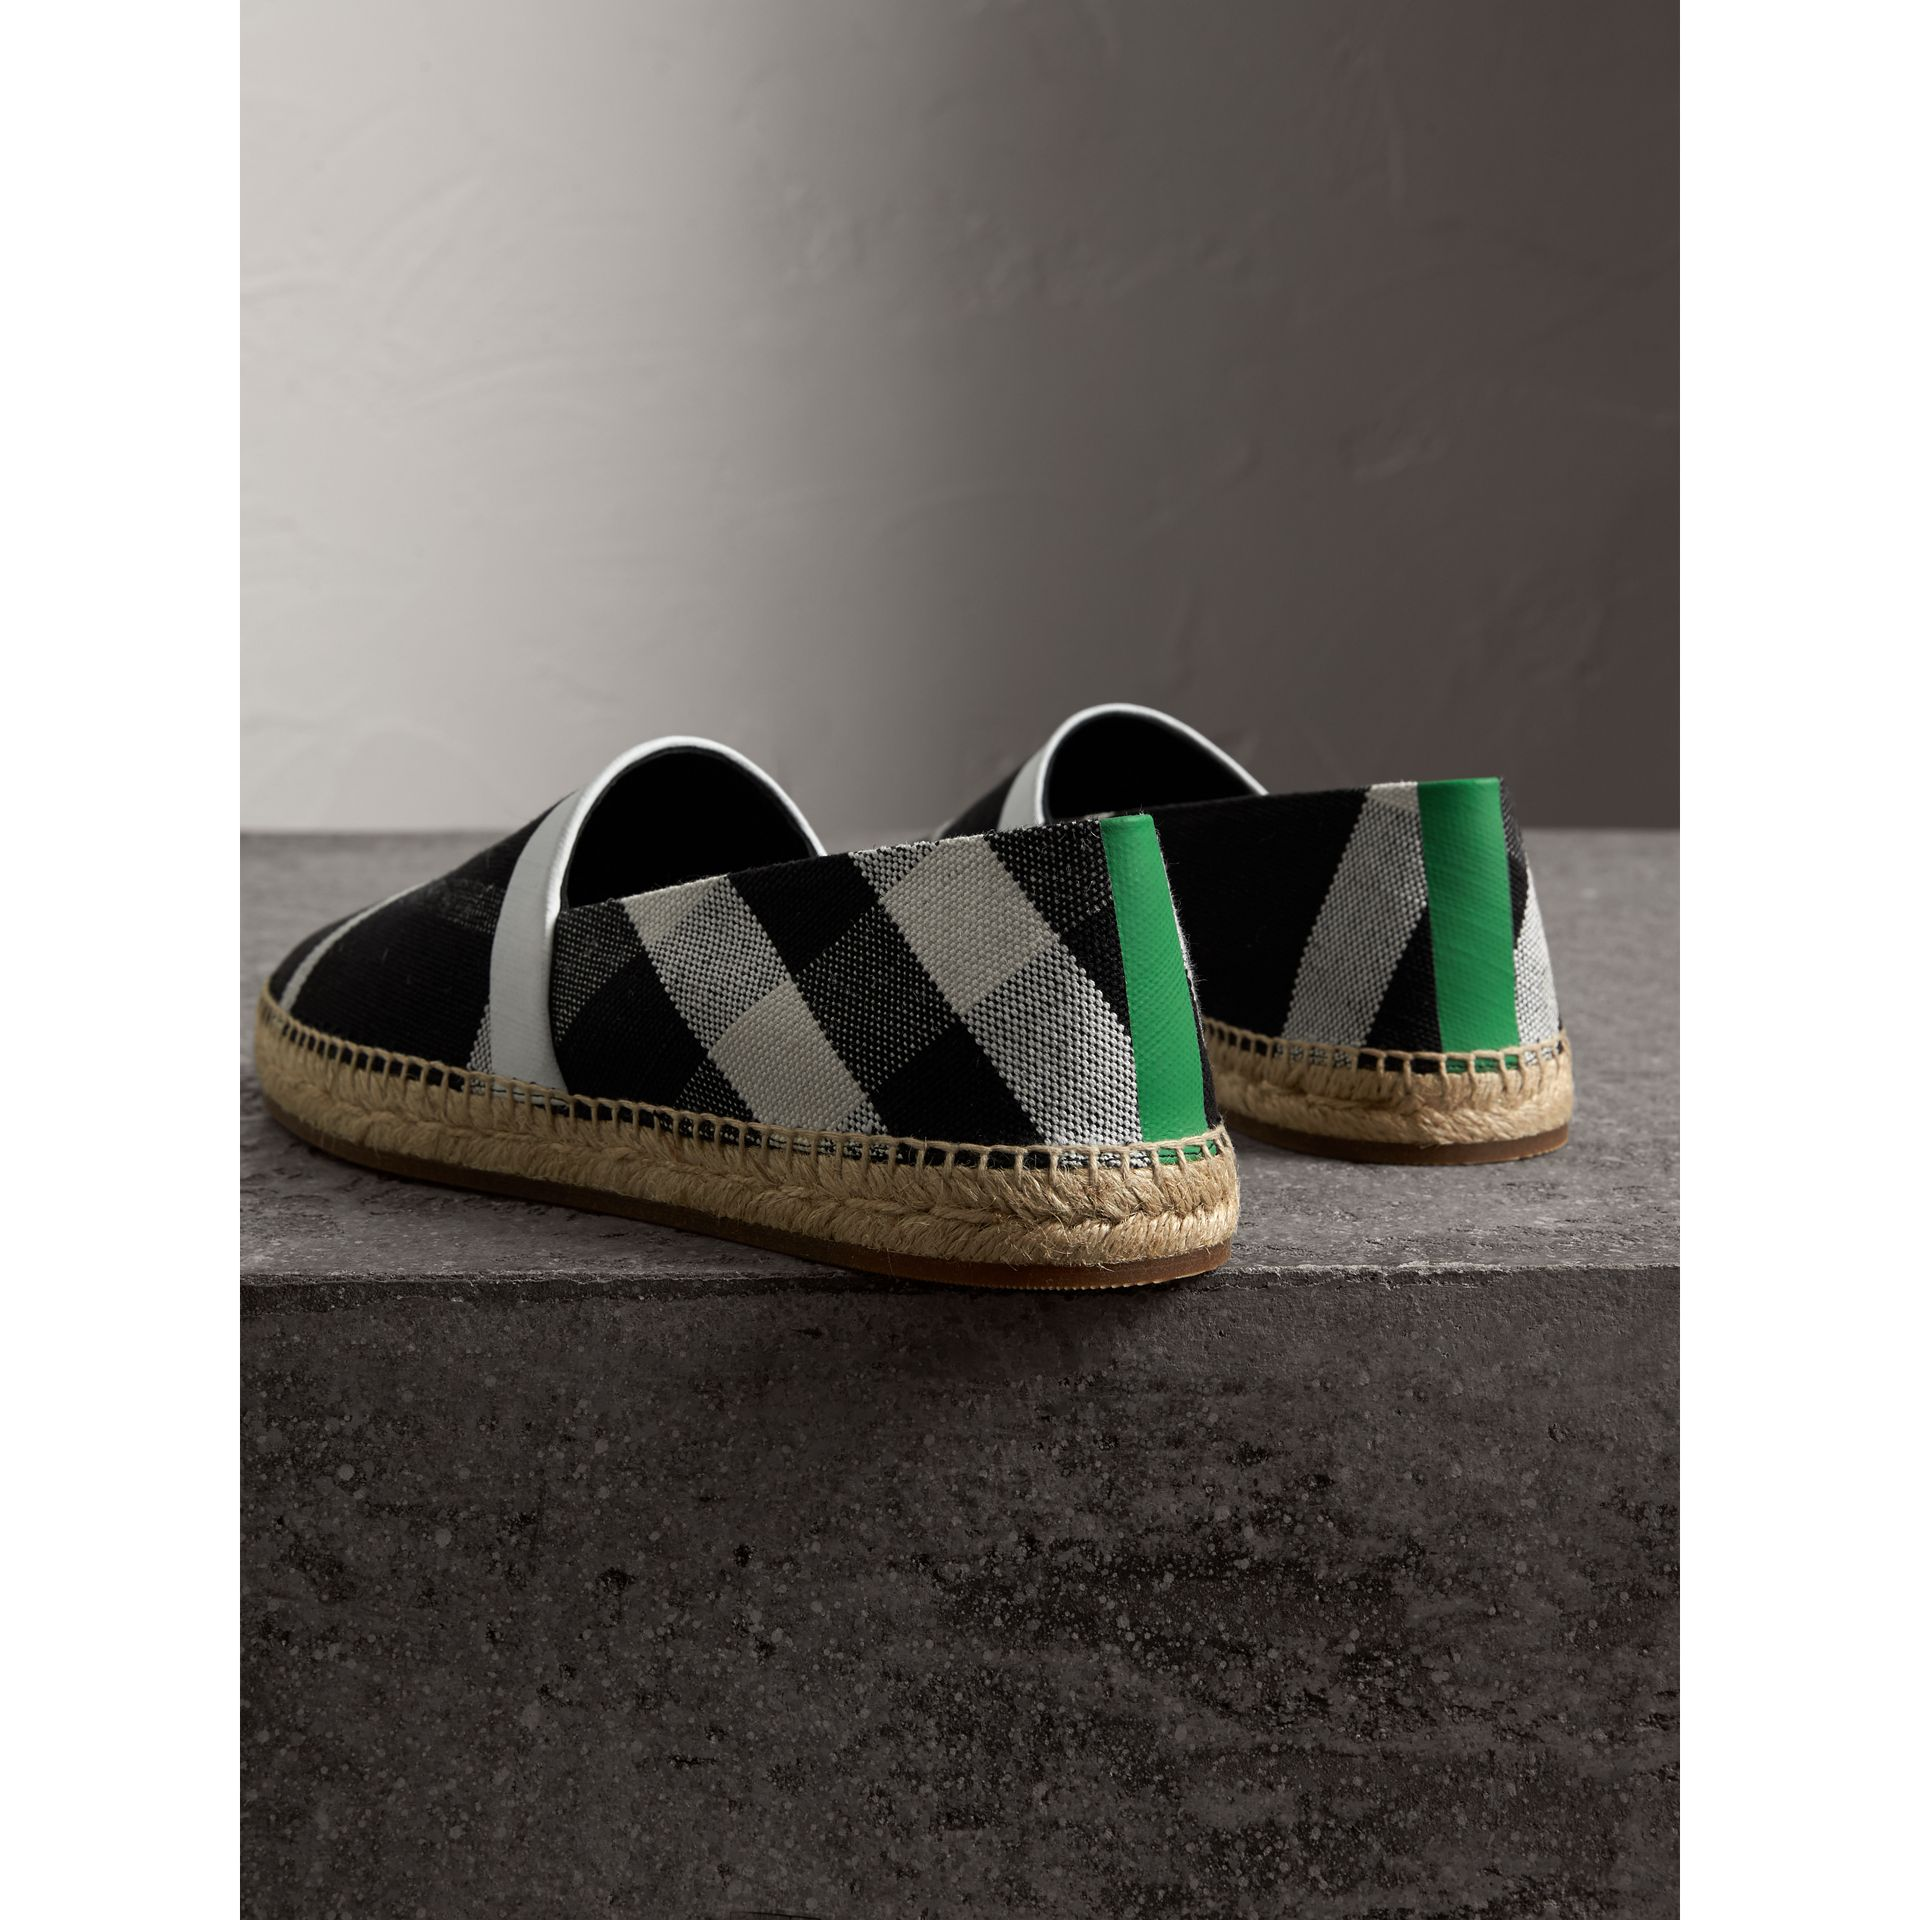 Check Cotton Canvas Seam-sealed Espadrilles in Black - Men | Burberry - gallery image 3